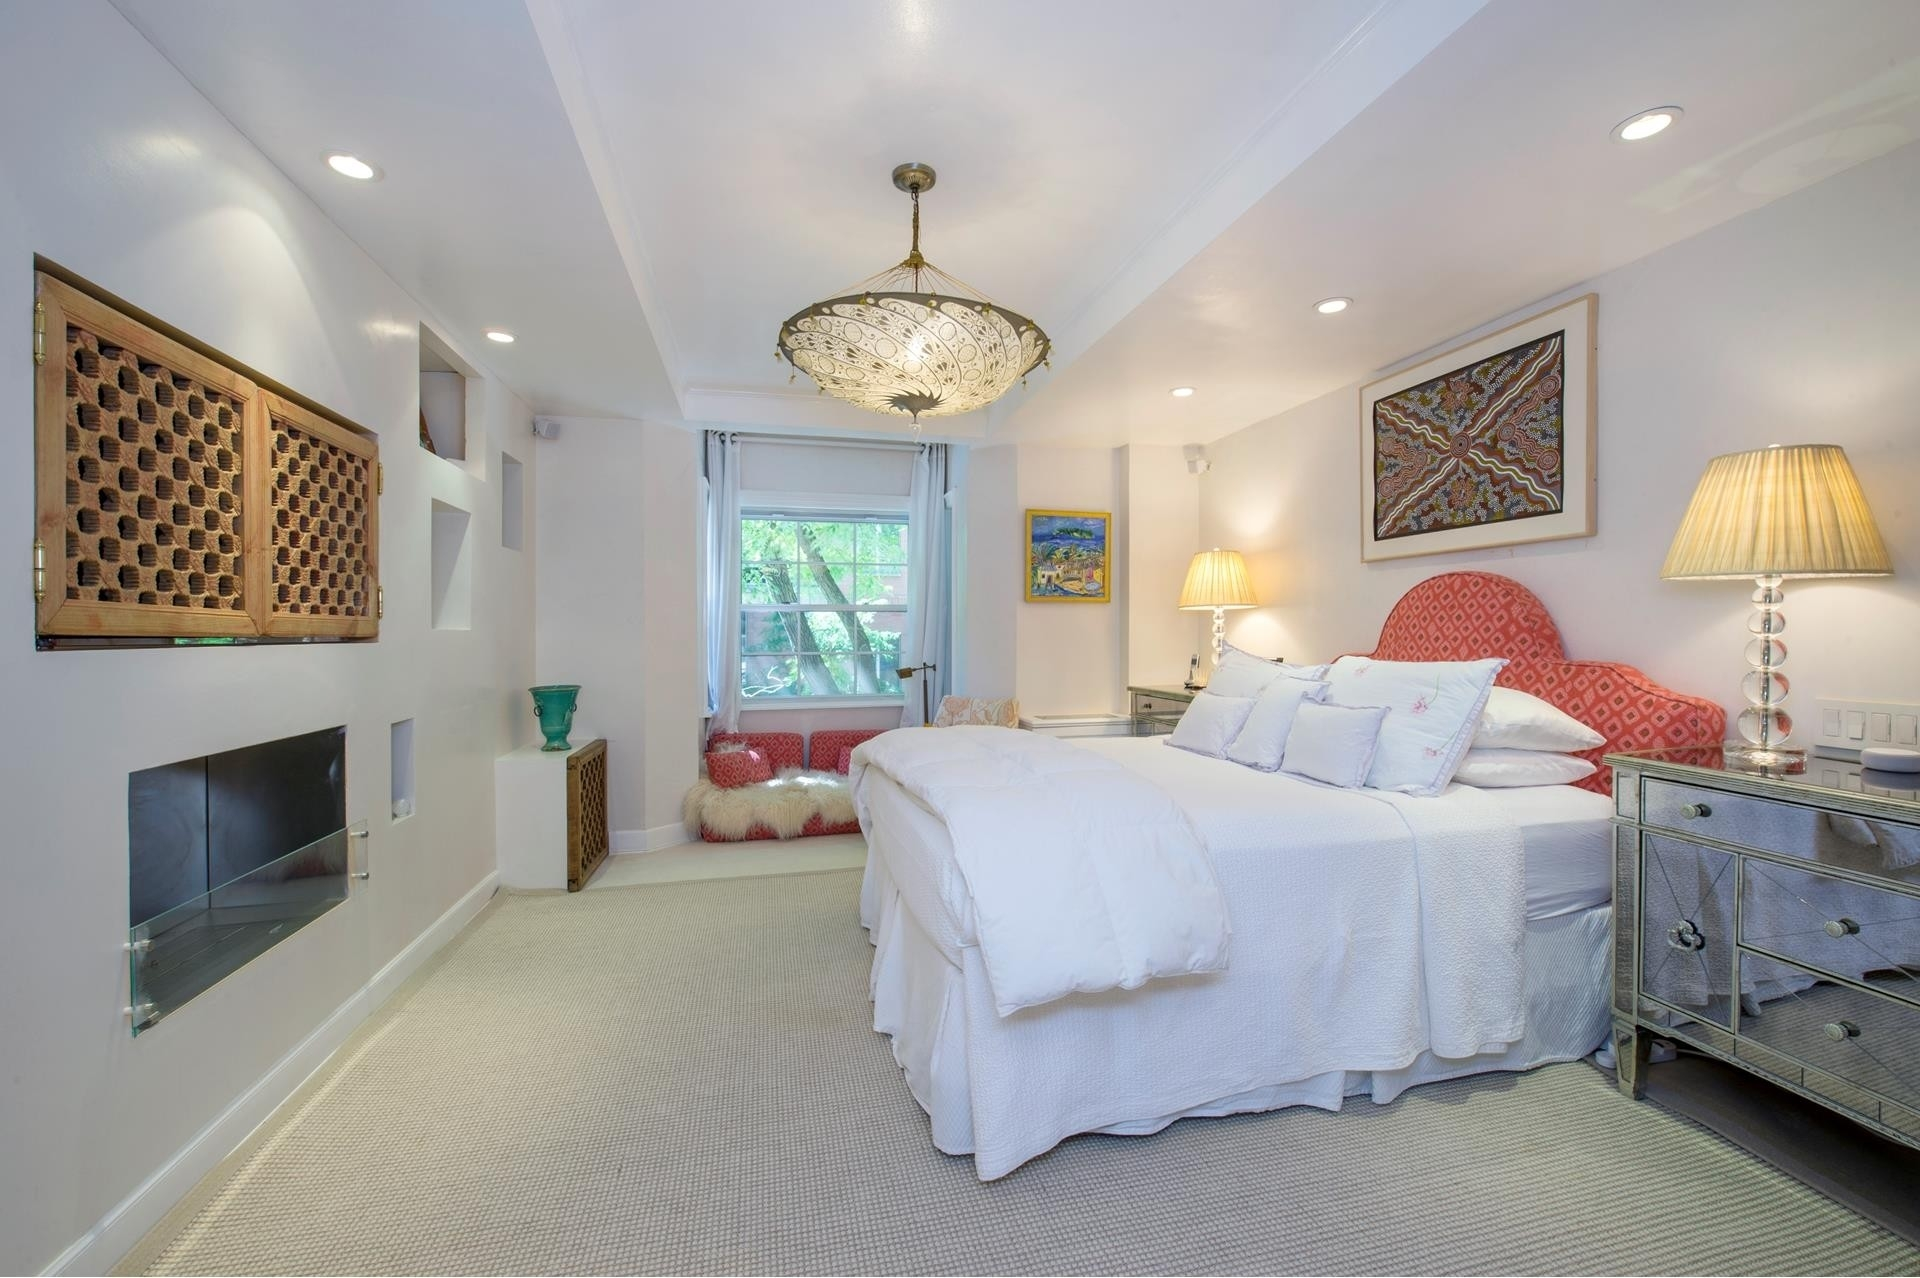 10. Co-op Properties for Sale at Colonial Studios, 39 W 67TH ST , 401402301 Lincoln Square, New York, NY 10023